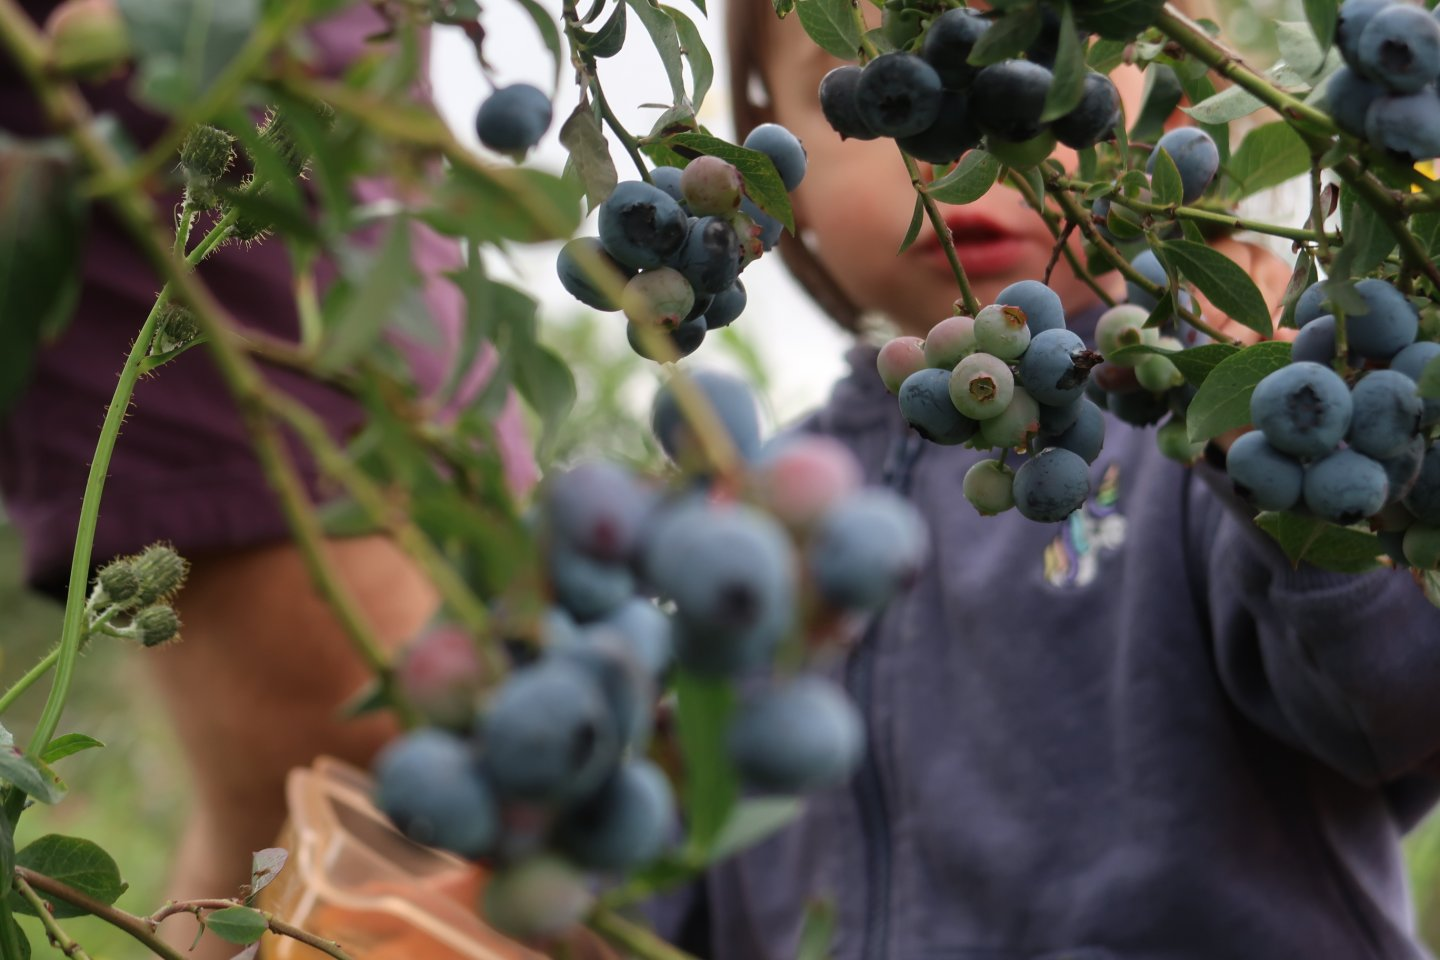 A close up of blueberries on the bush, with an out of focus B picking fruit in the background.